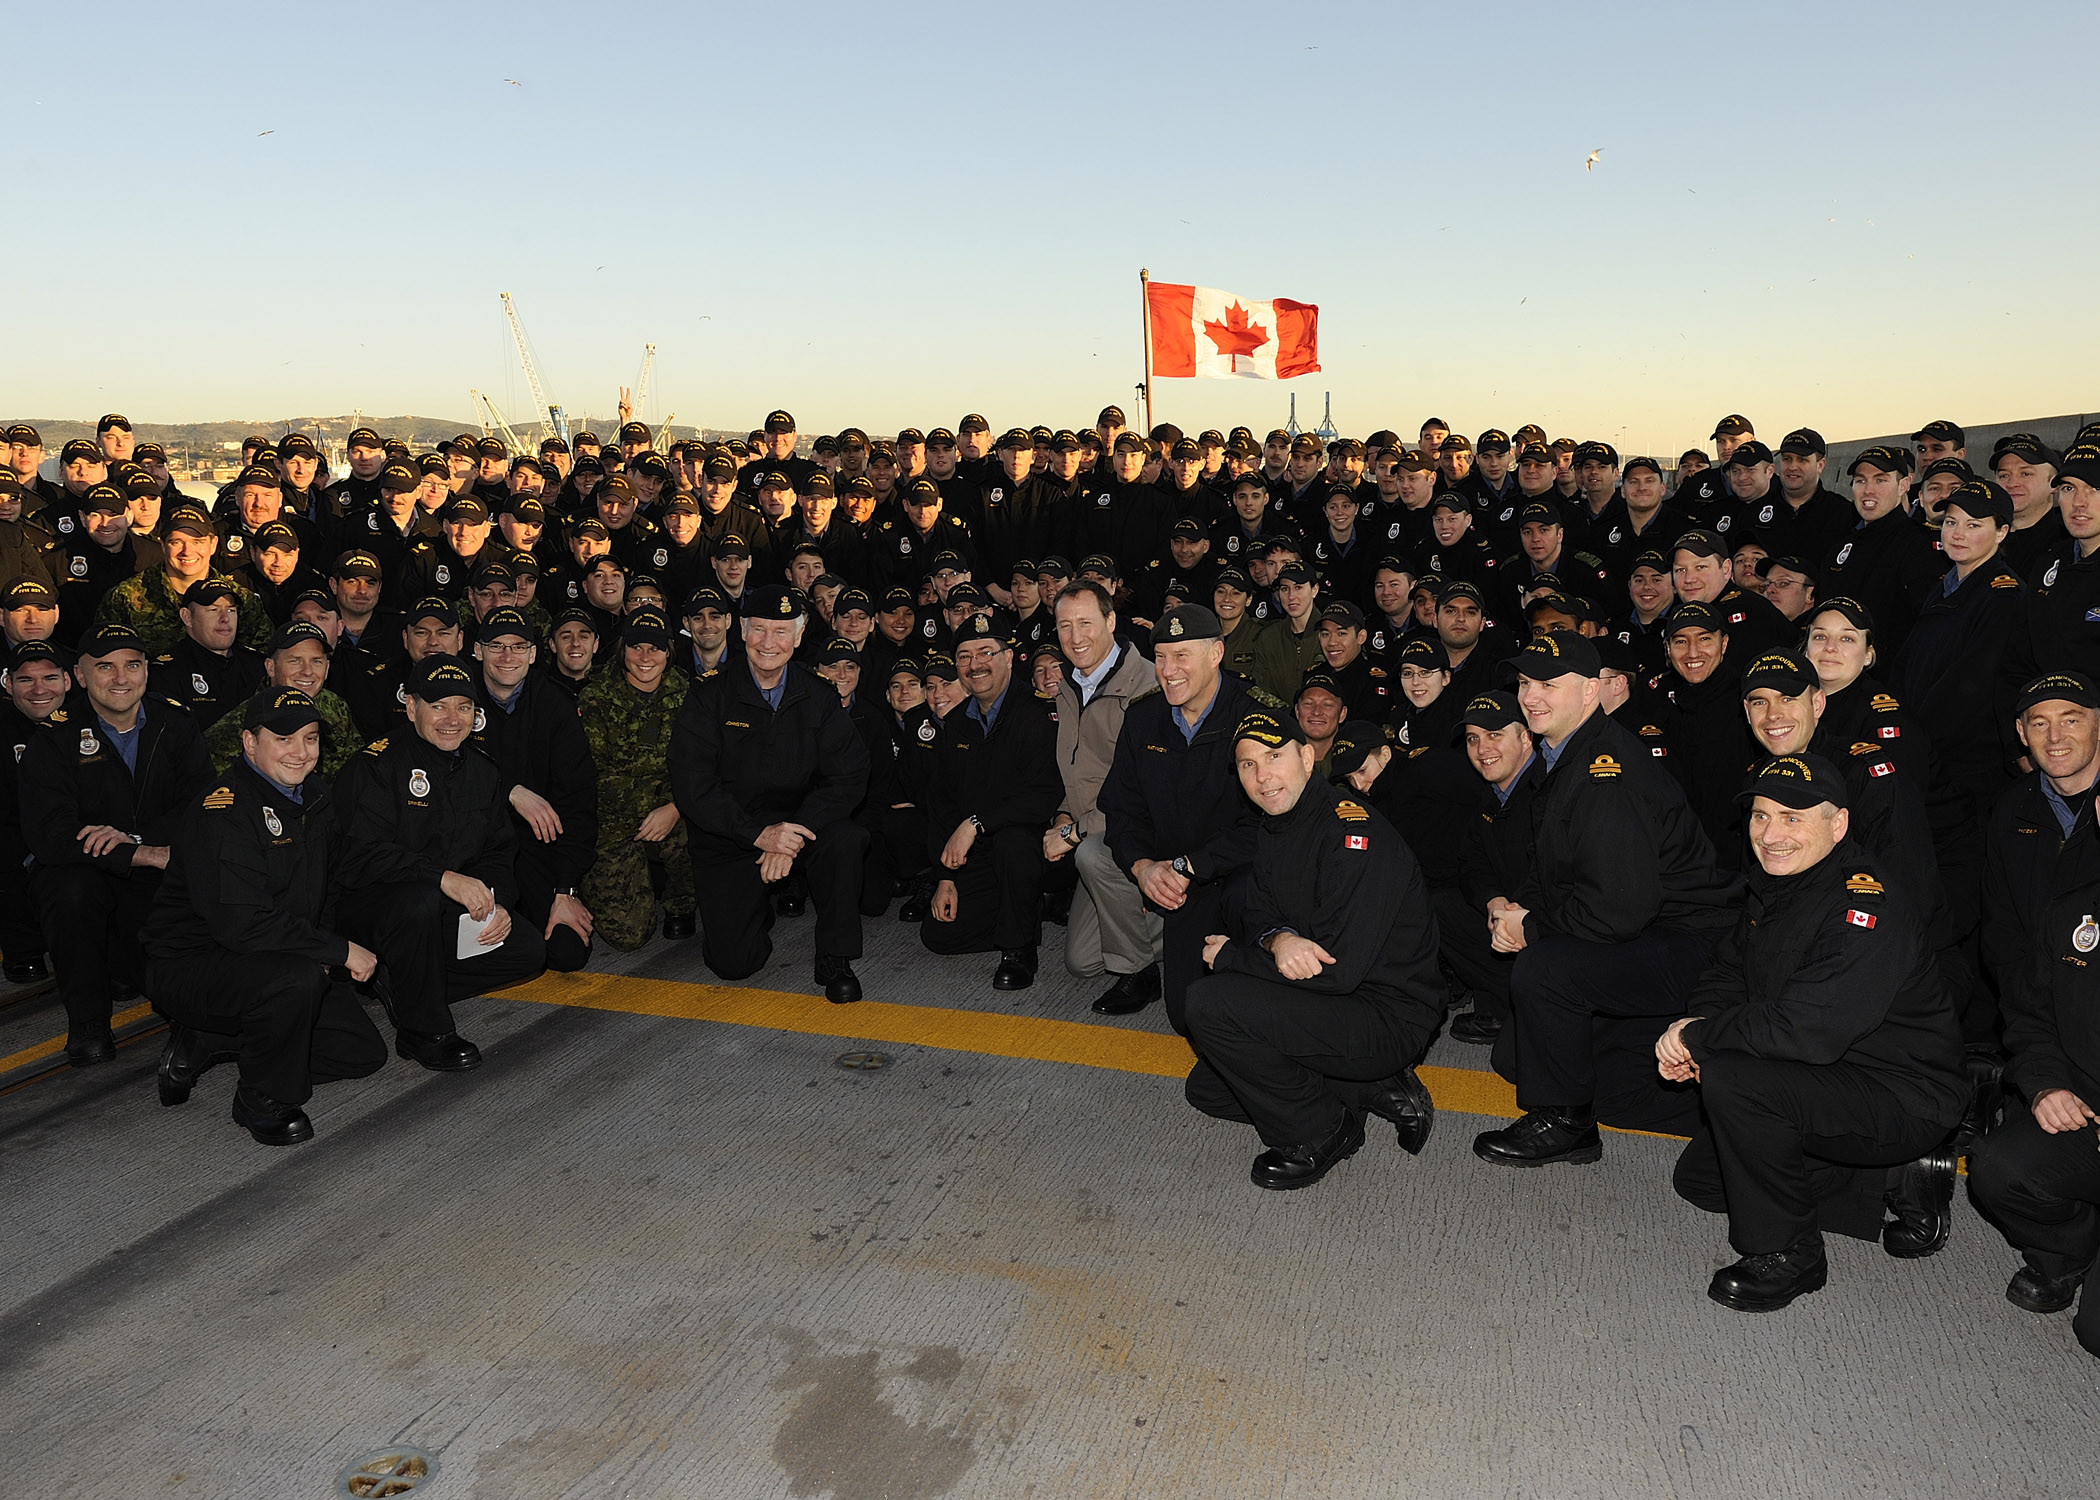 The Governor General and Commander-in-Chief of Canada visited, from December 22 to 25, 2011, Canadian troops and civilians deployed in Italy and Afghanistan.